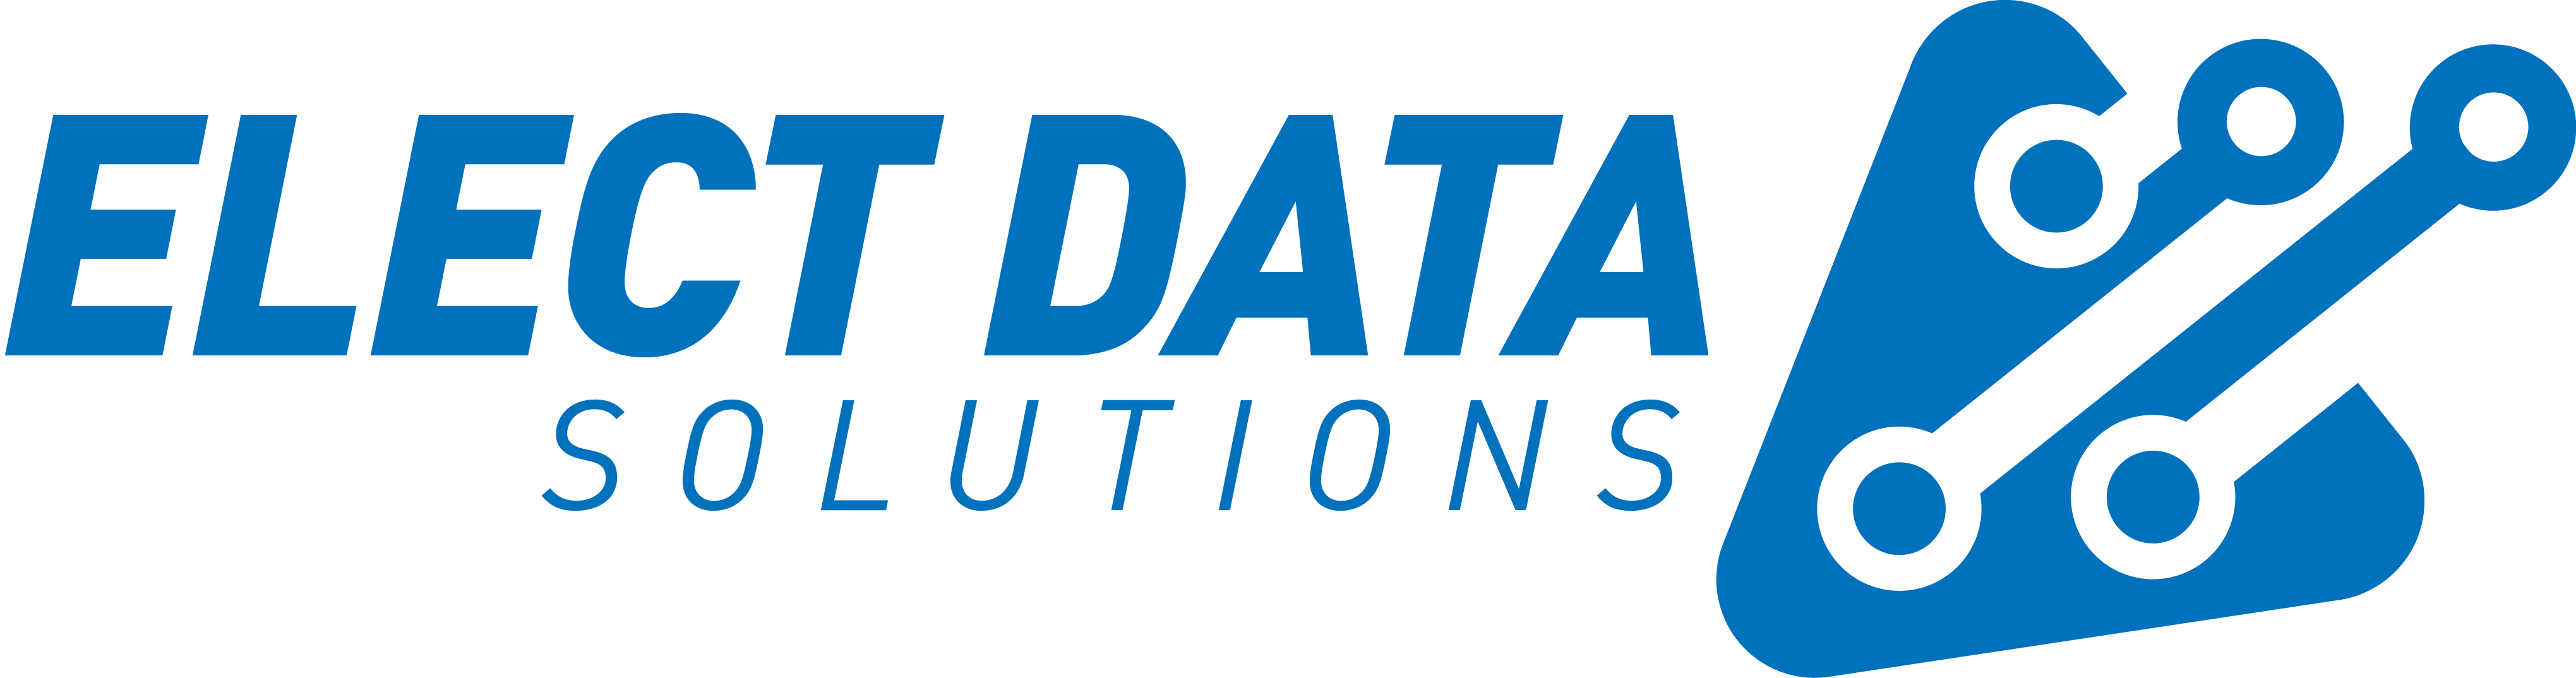 Elect Data Solutions | IT Consulting and Support | Raleigh, NC